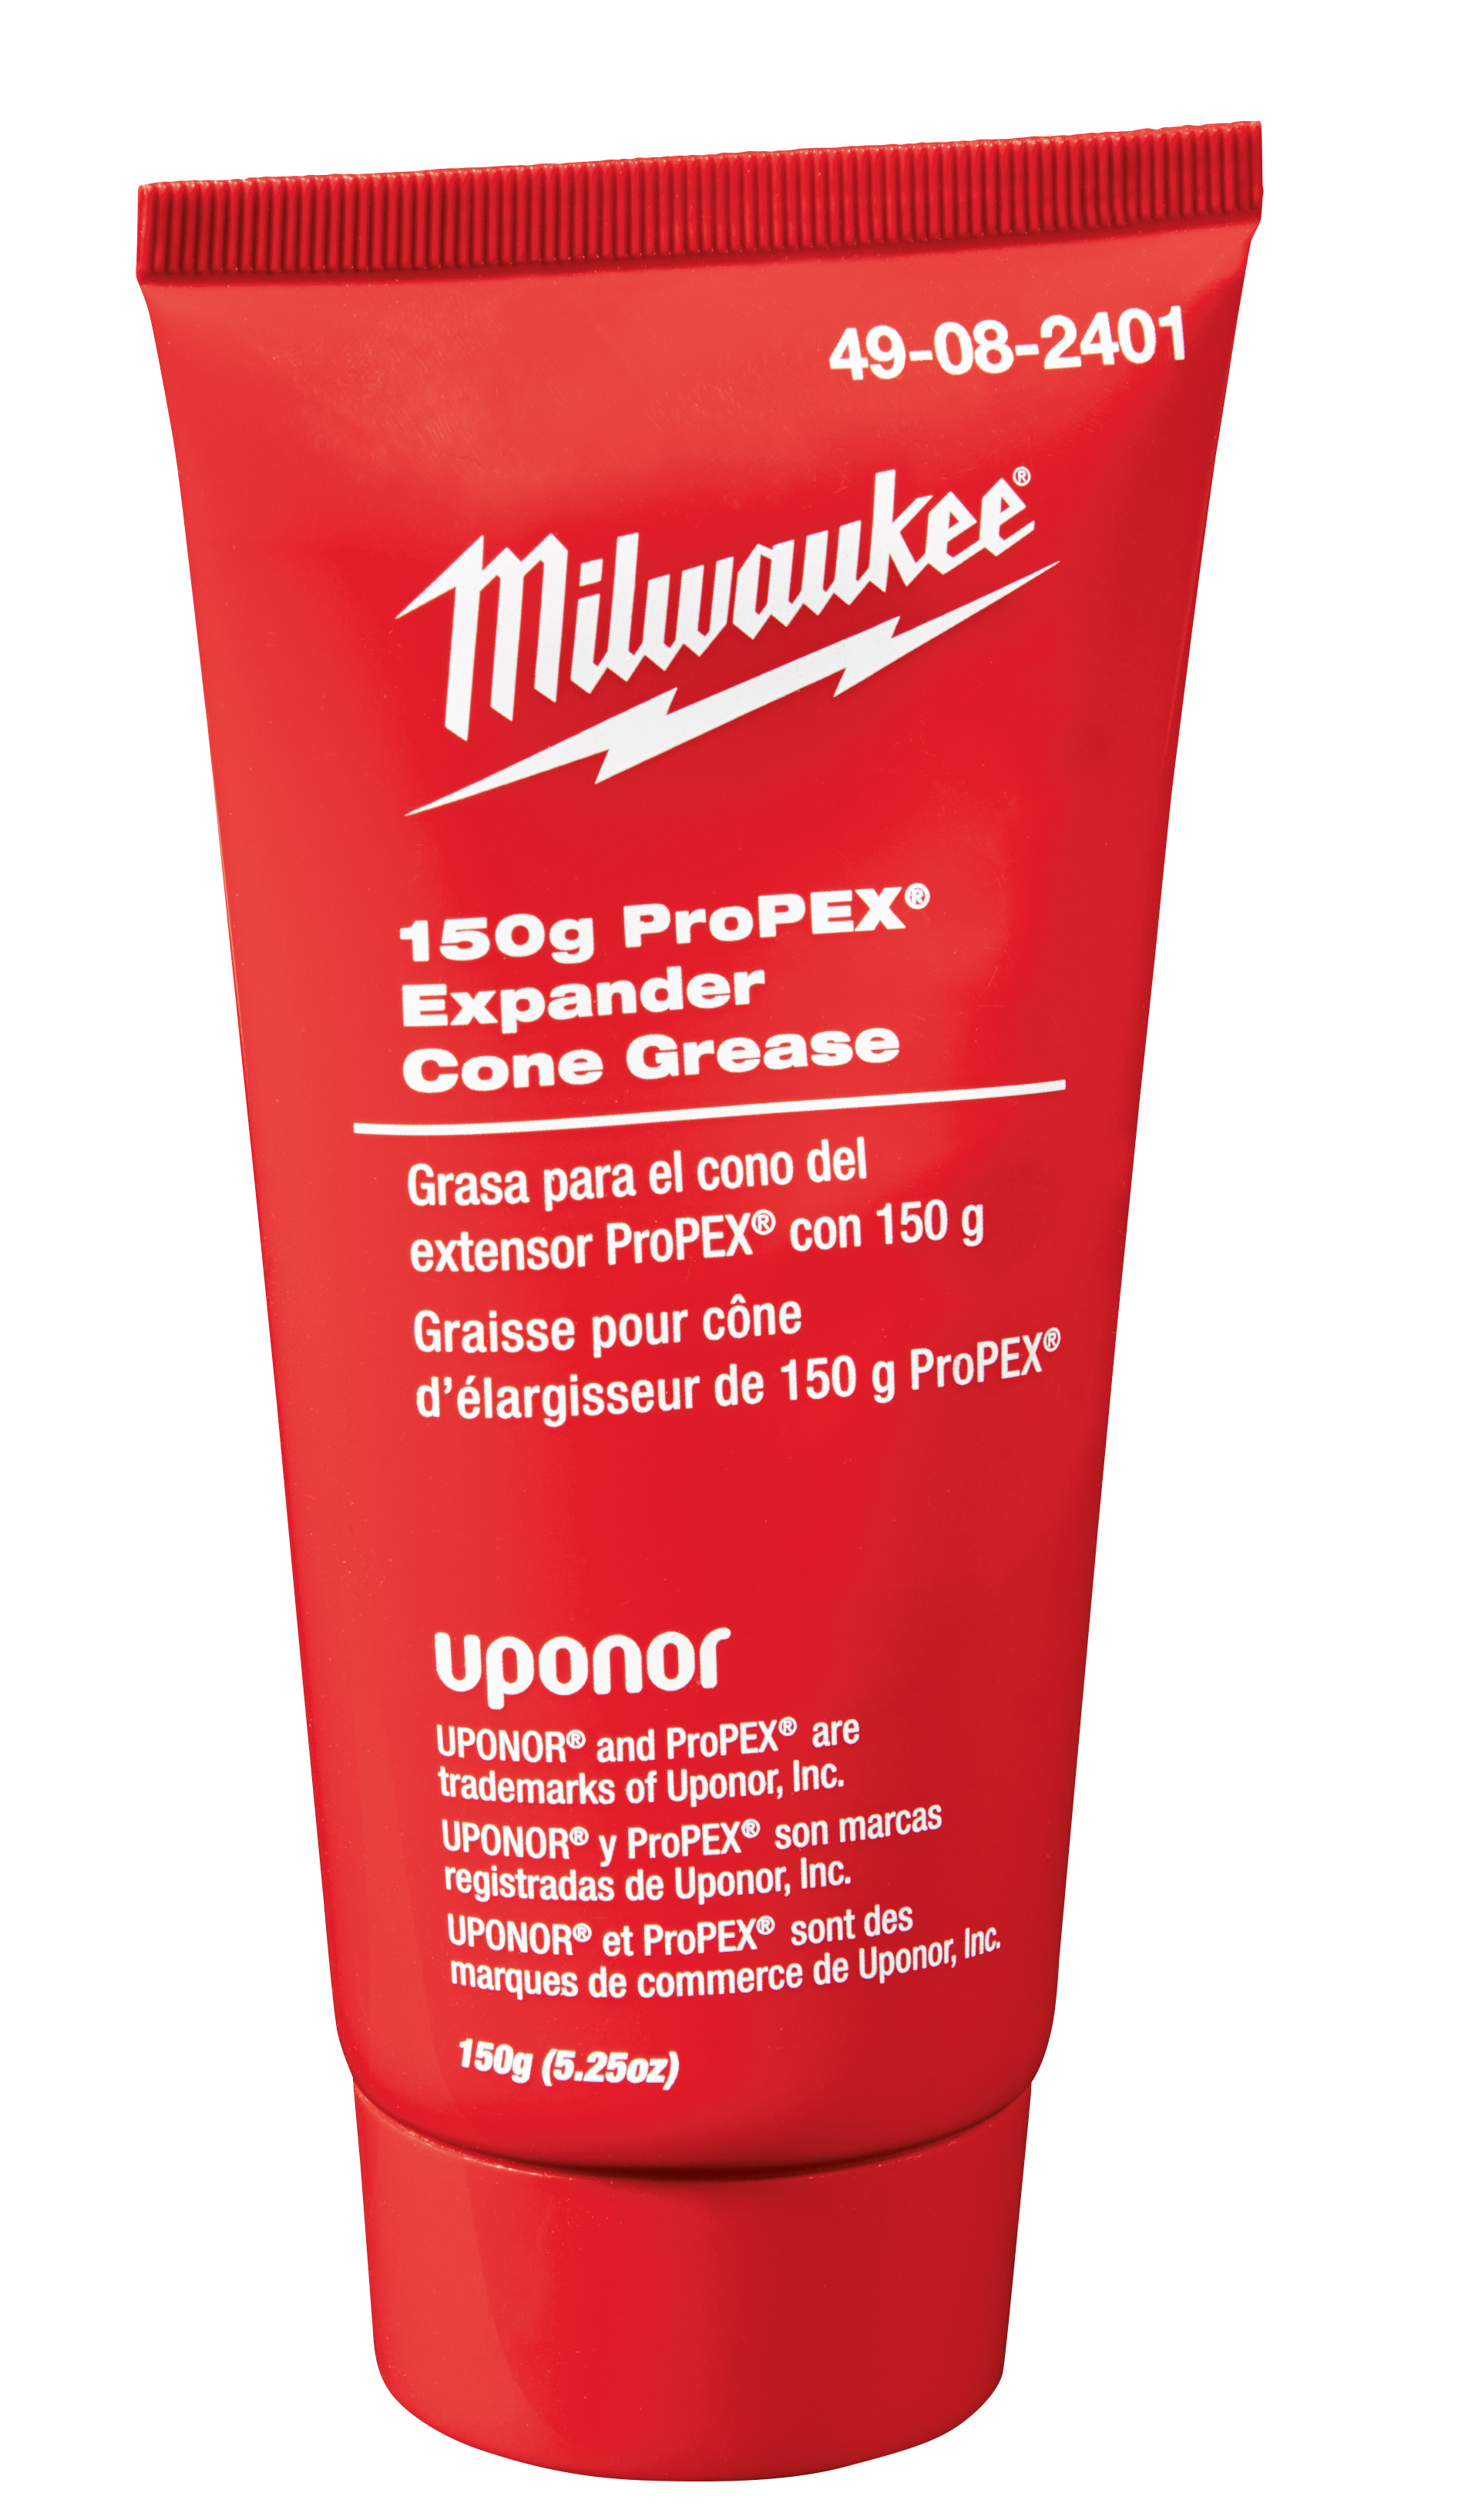 Milwaukee® ProPEX® 49-08-2401 Expander Cone Grease, 150 g Tube, Red, 392 deg F